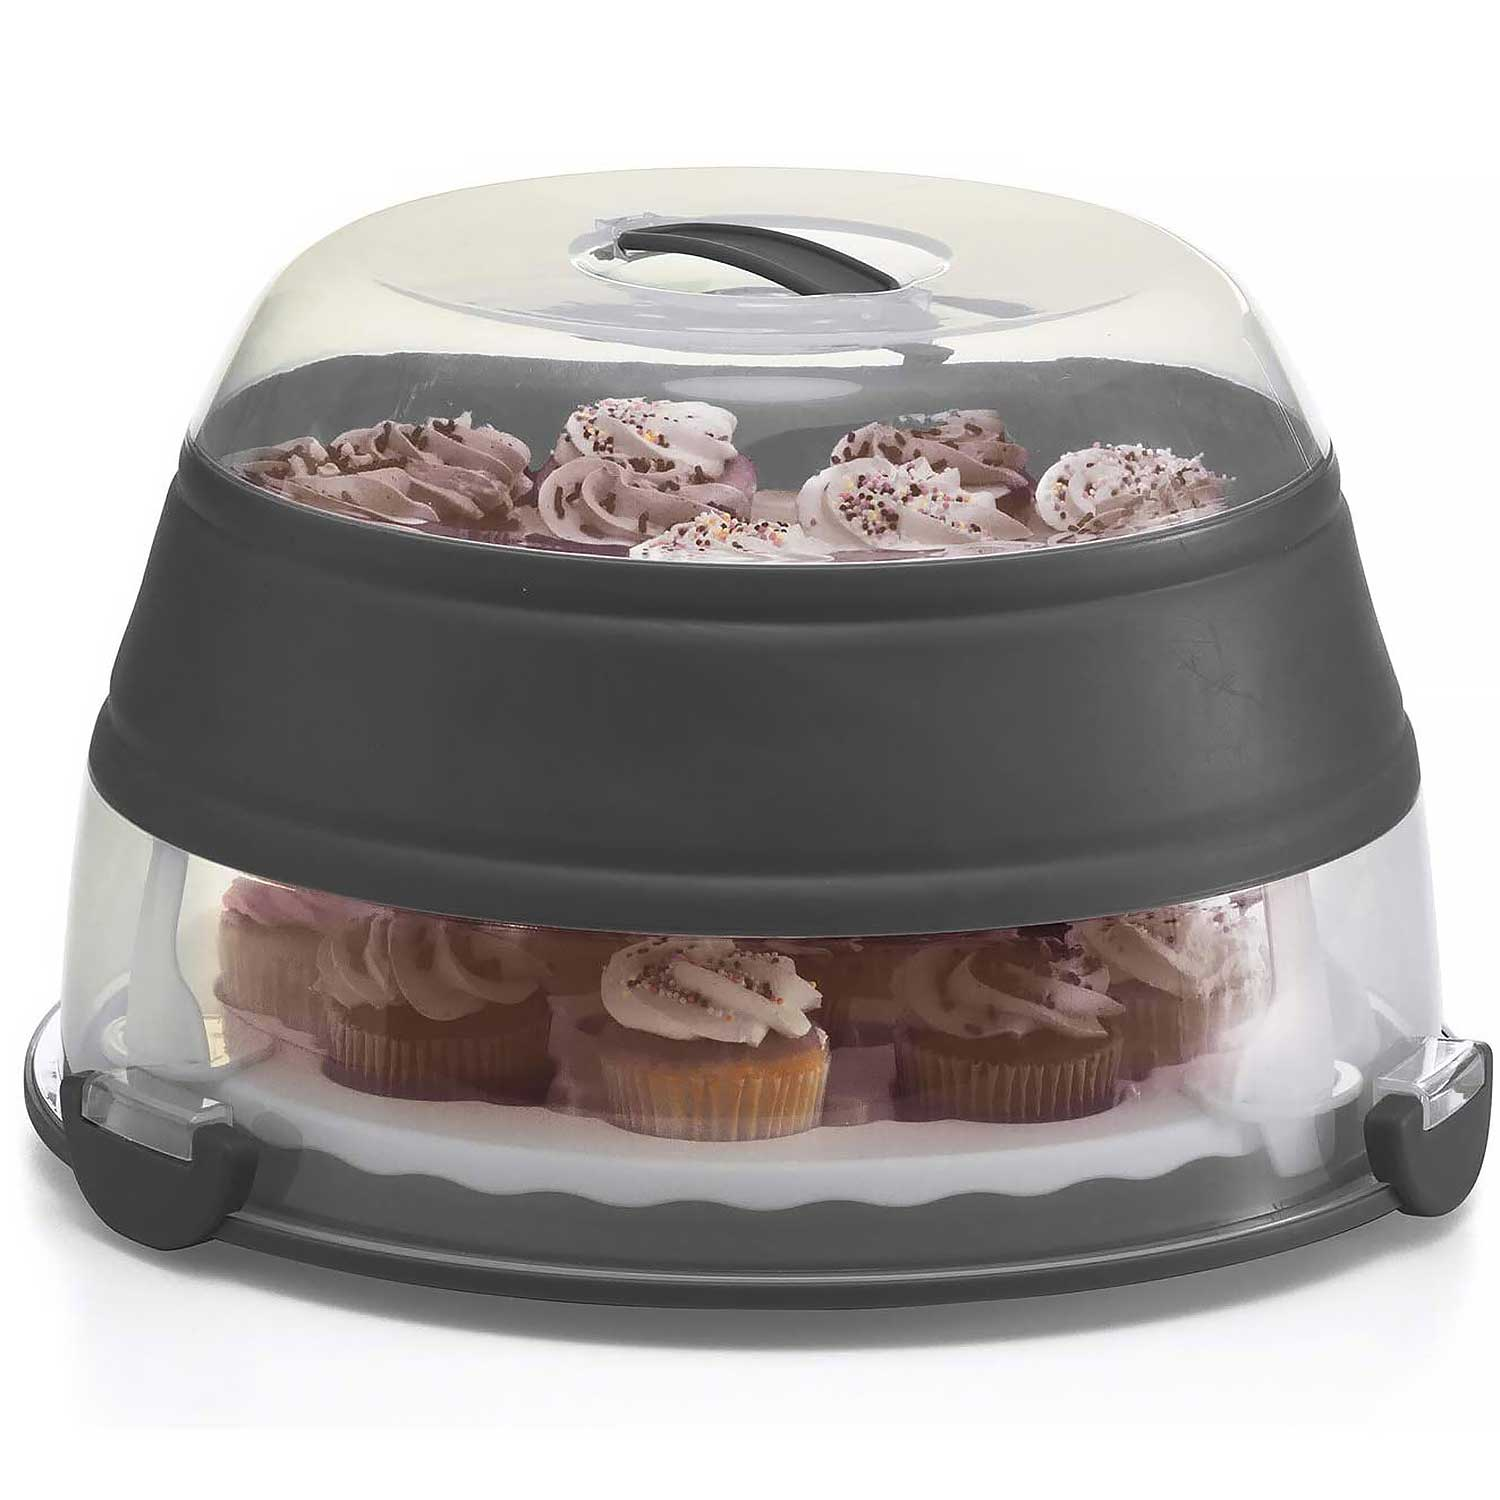 Collapsible Cake/ Cupcake Carrier